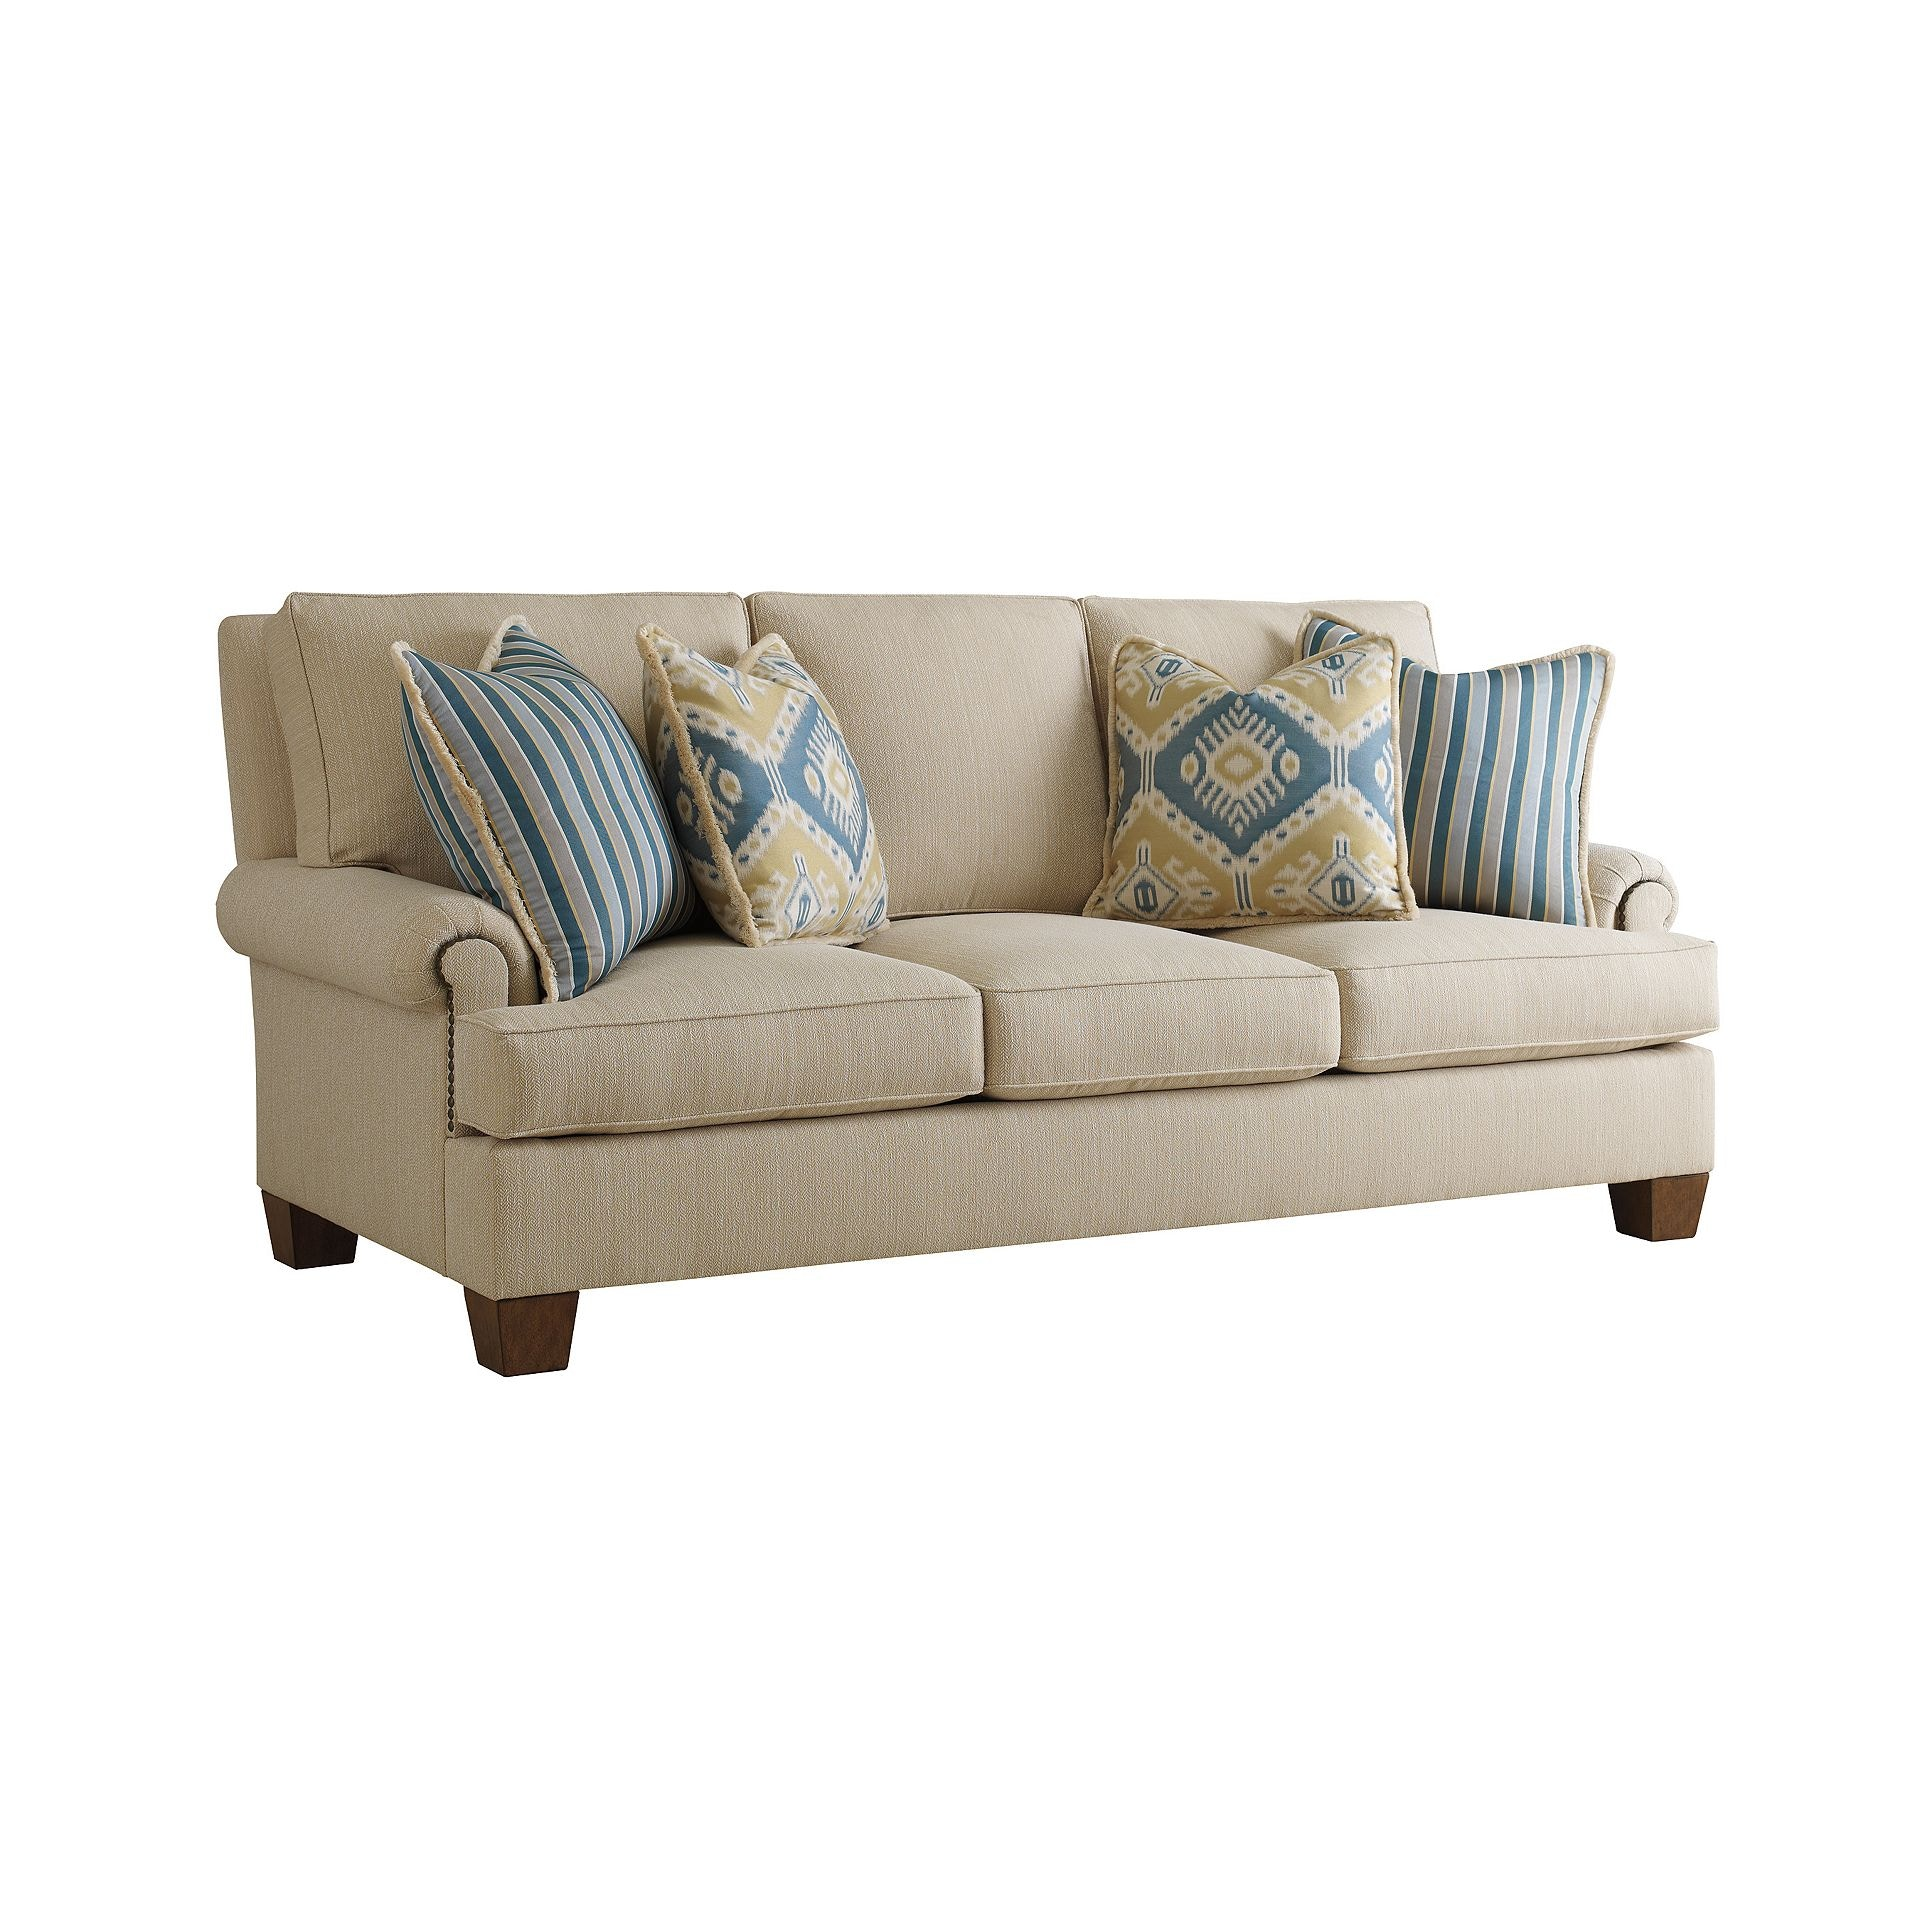 Henredon Furniture Fireside Custom Upholstery Fireside Sofa H2000C